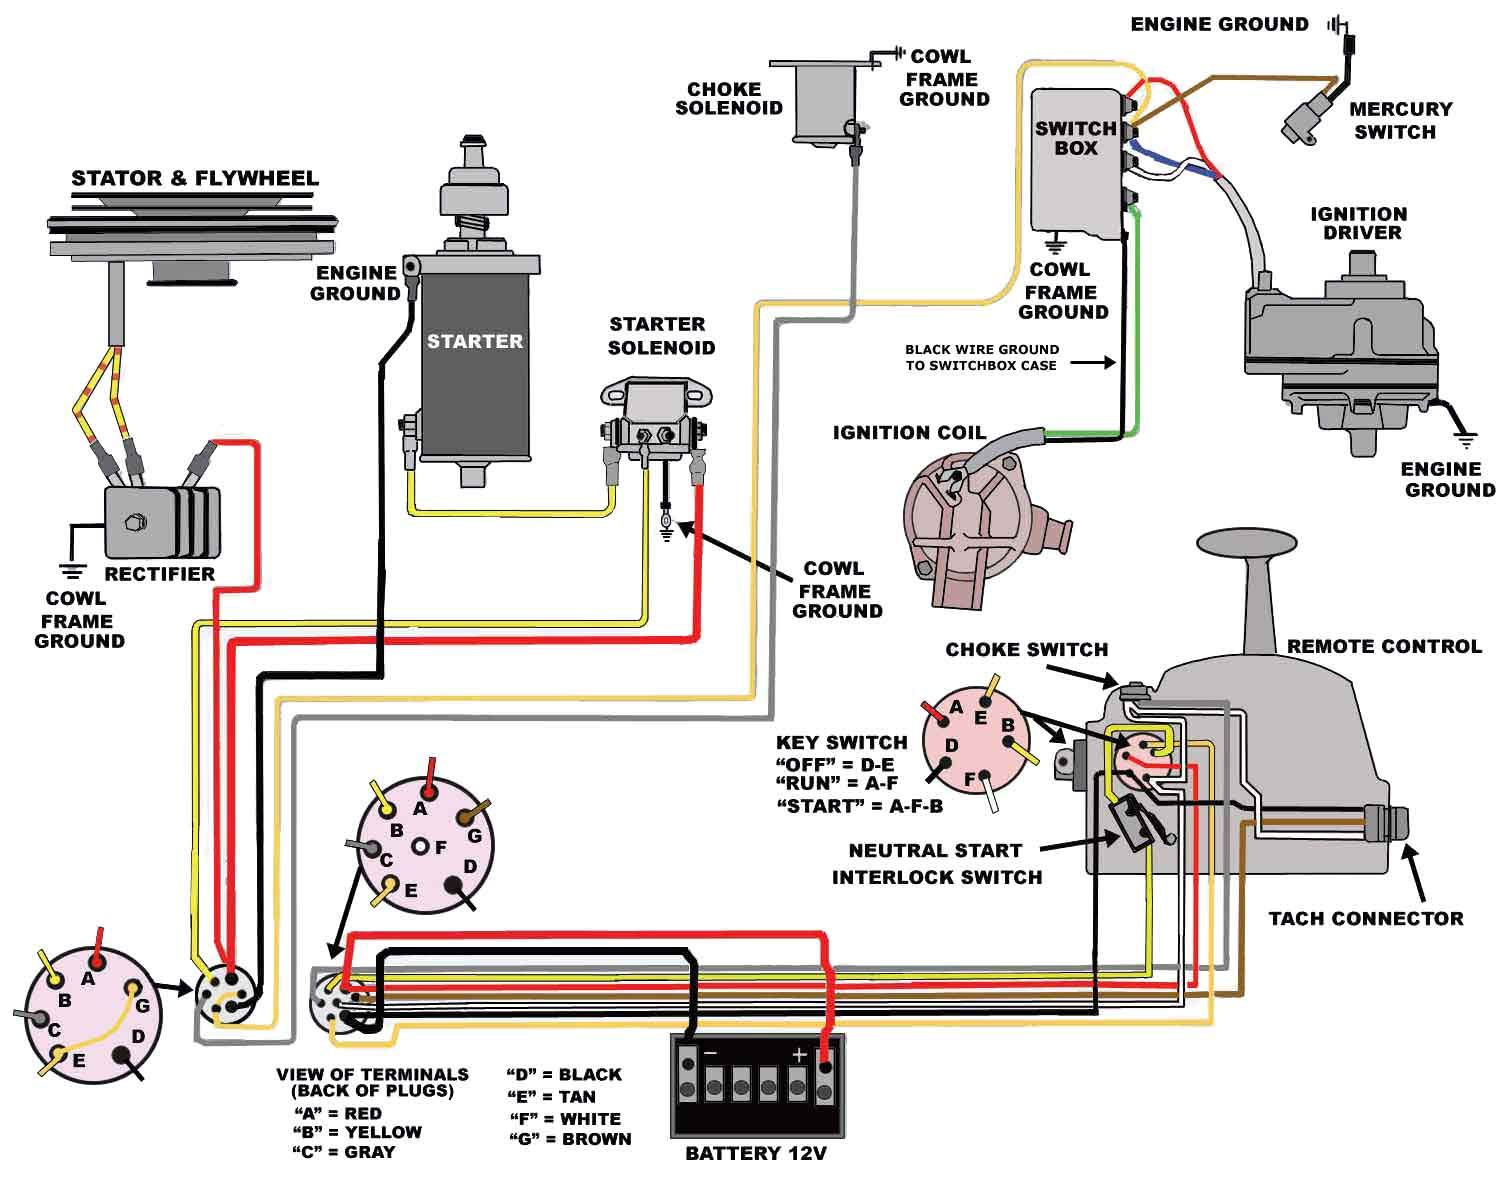 hight resolution of mercury outboard wiring diagram ignition switch my wiring diagram mercury outboard ignition switch wiring mercury outboard ignition wiring